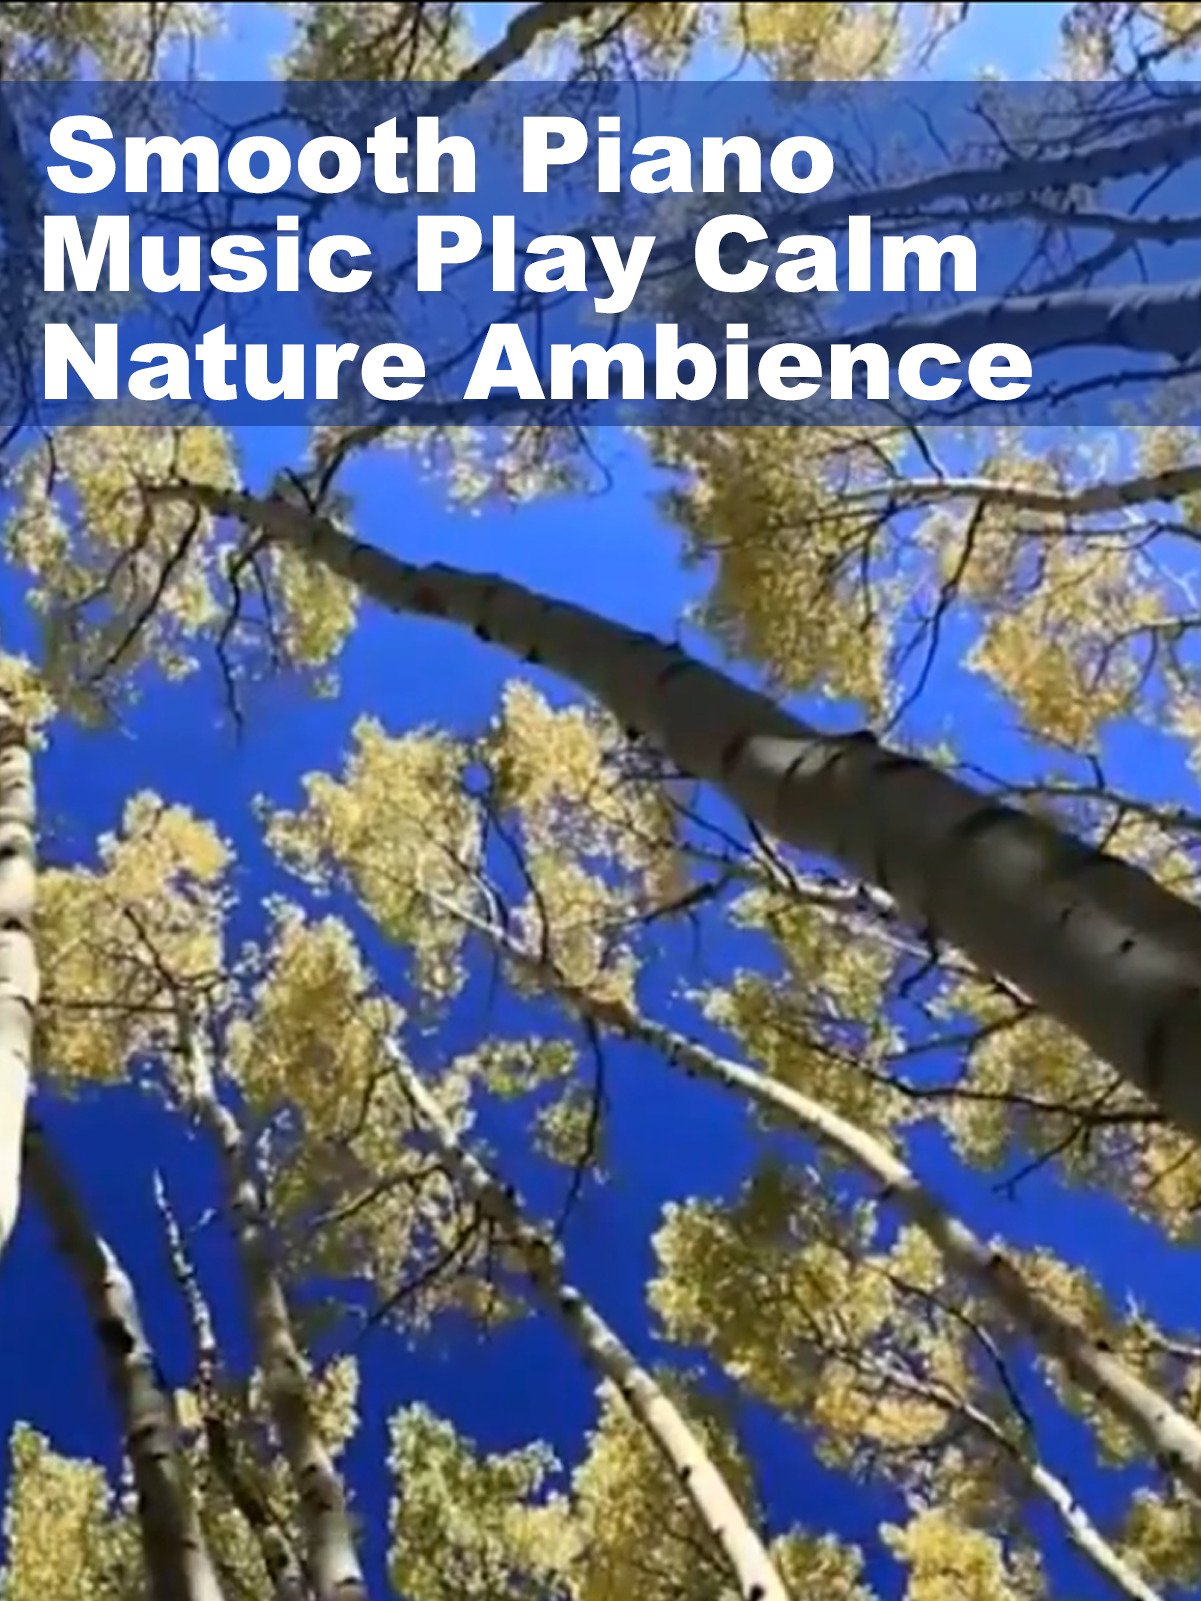 Smooth Piano Music Play Calm Nature Ambience on Amazon Prime Instant Video UK